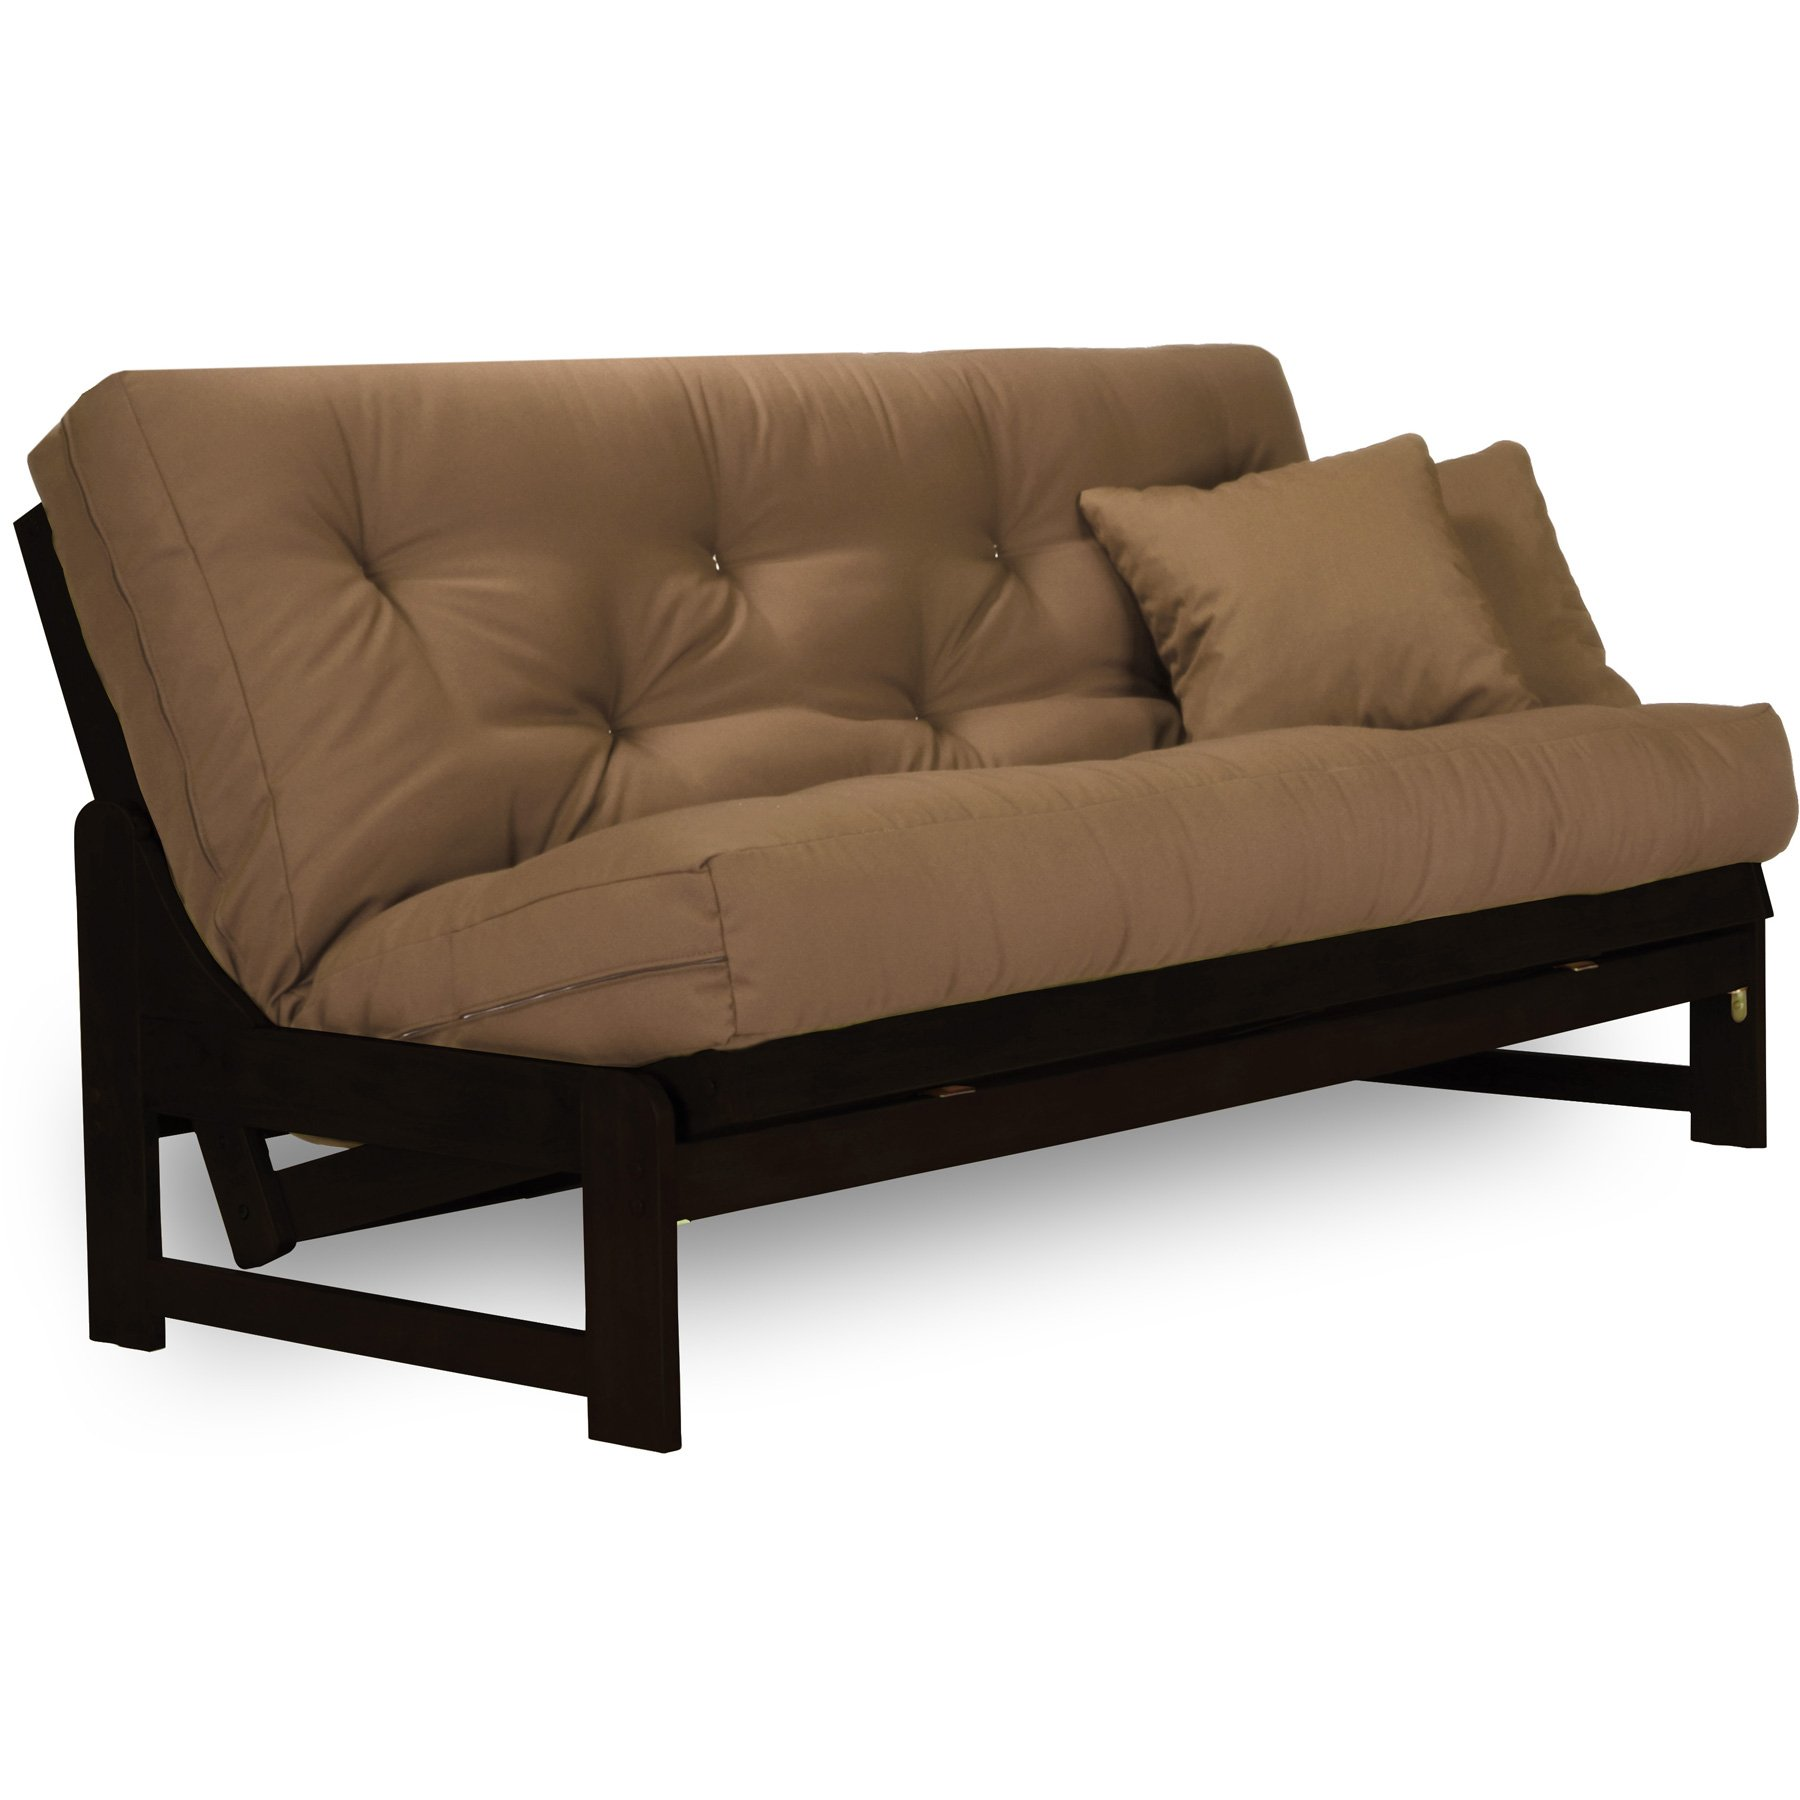 Arden Dark Espresso (Near Black) Futon Set Queen Size - Armless Futon Frame with Mattress (Microfiber Sussex Khaki), More Mattress Colors & Sizes Available, Space Saving Modern Sofa Bed Sleeper